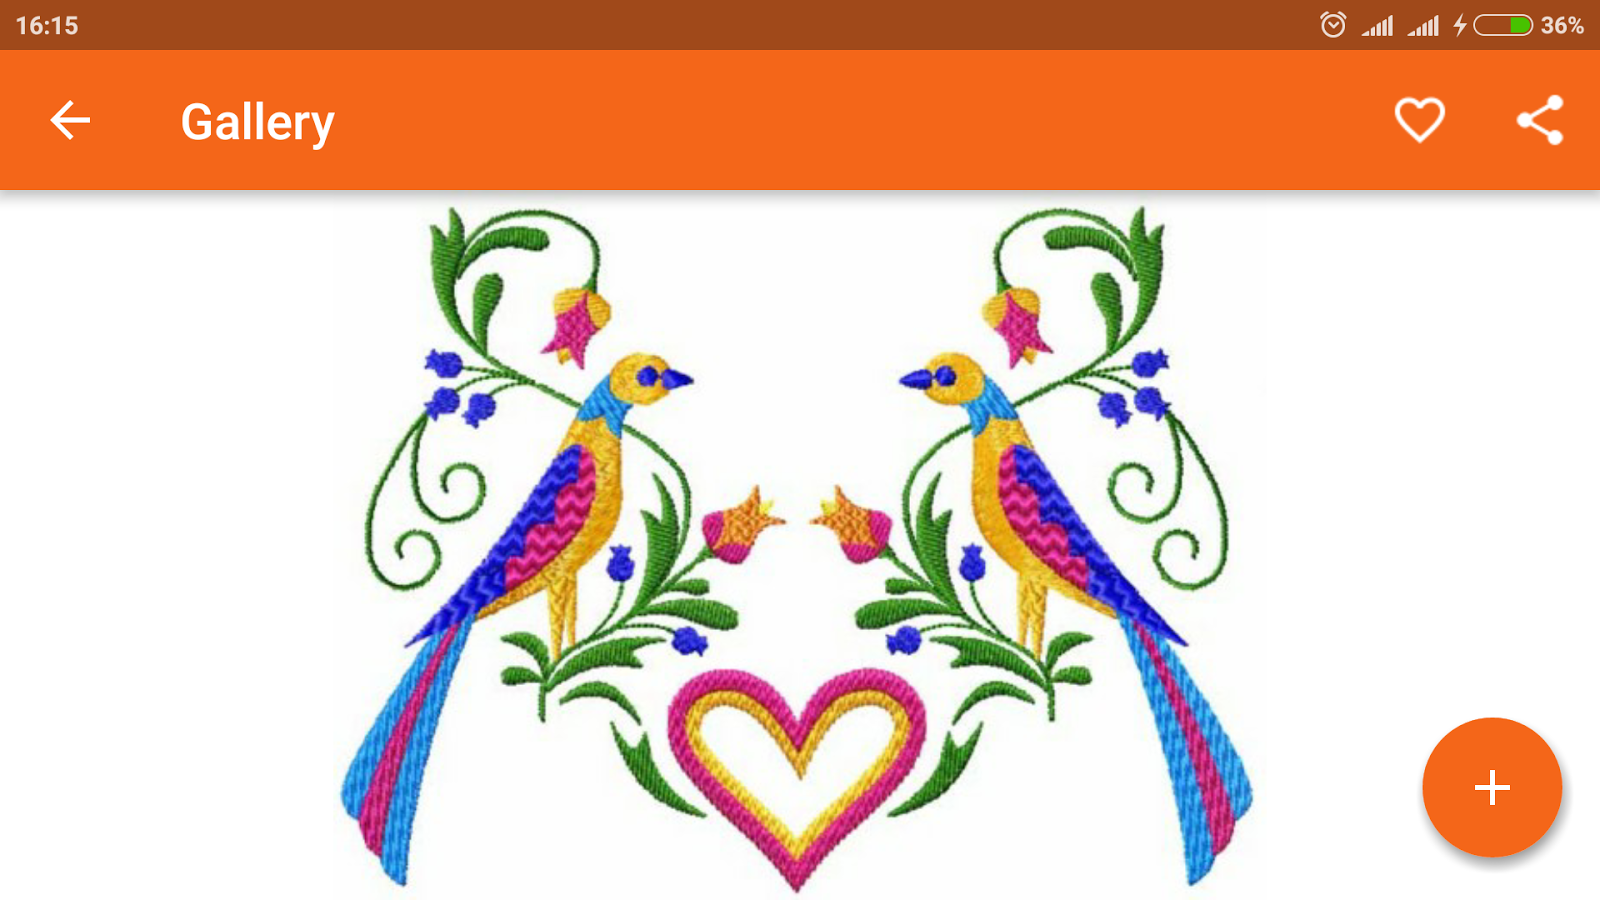 Embroidery pattern designs android apps on google play embroidery pattern designs screenshot bankloansurffo Gallery